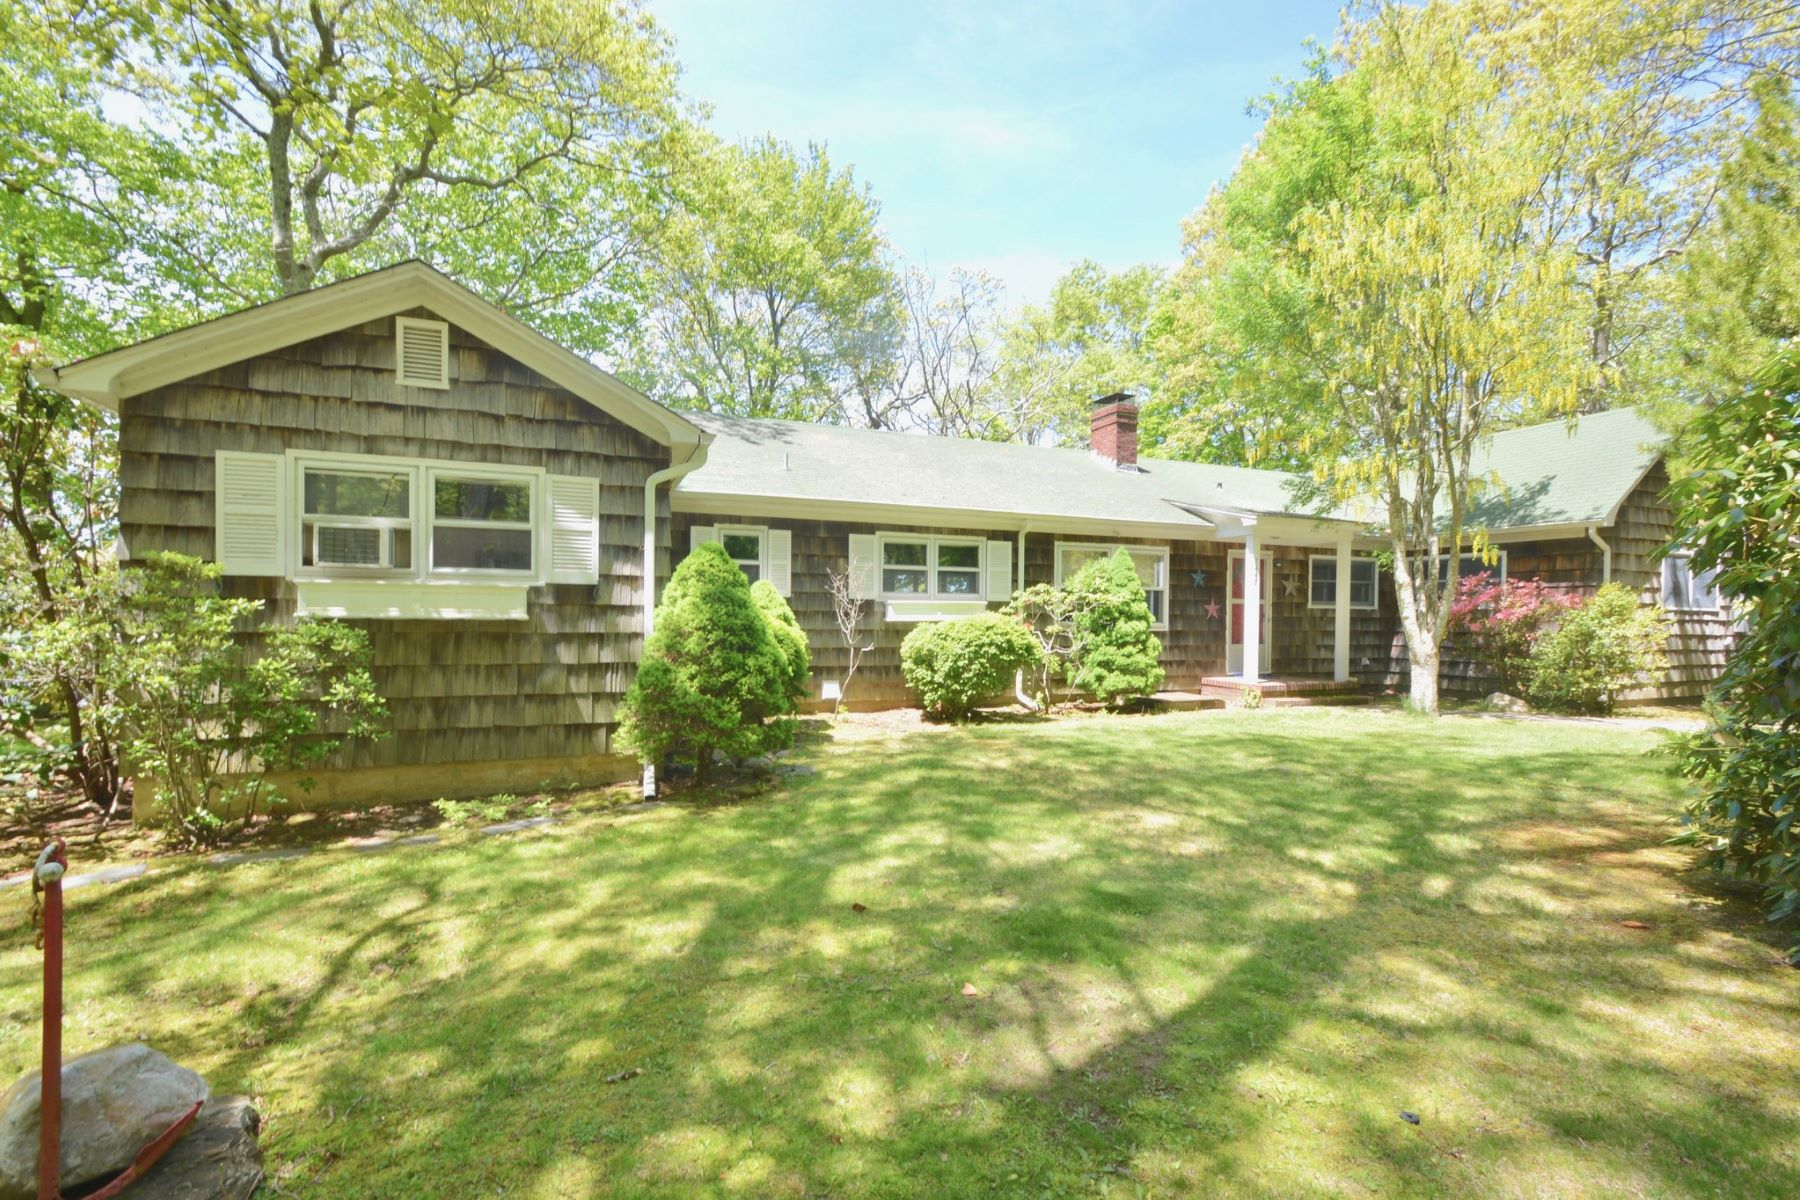 Single Family Home for Active at 7447 Soundview Ave, ,Southold, New York, 11971 7447 Soundview Ave Southold, New York 11971 United States